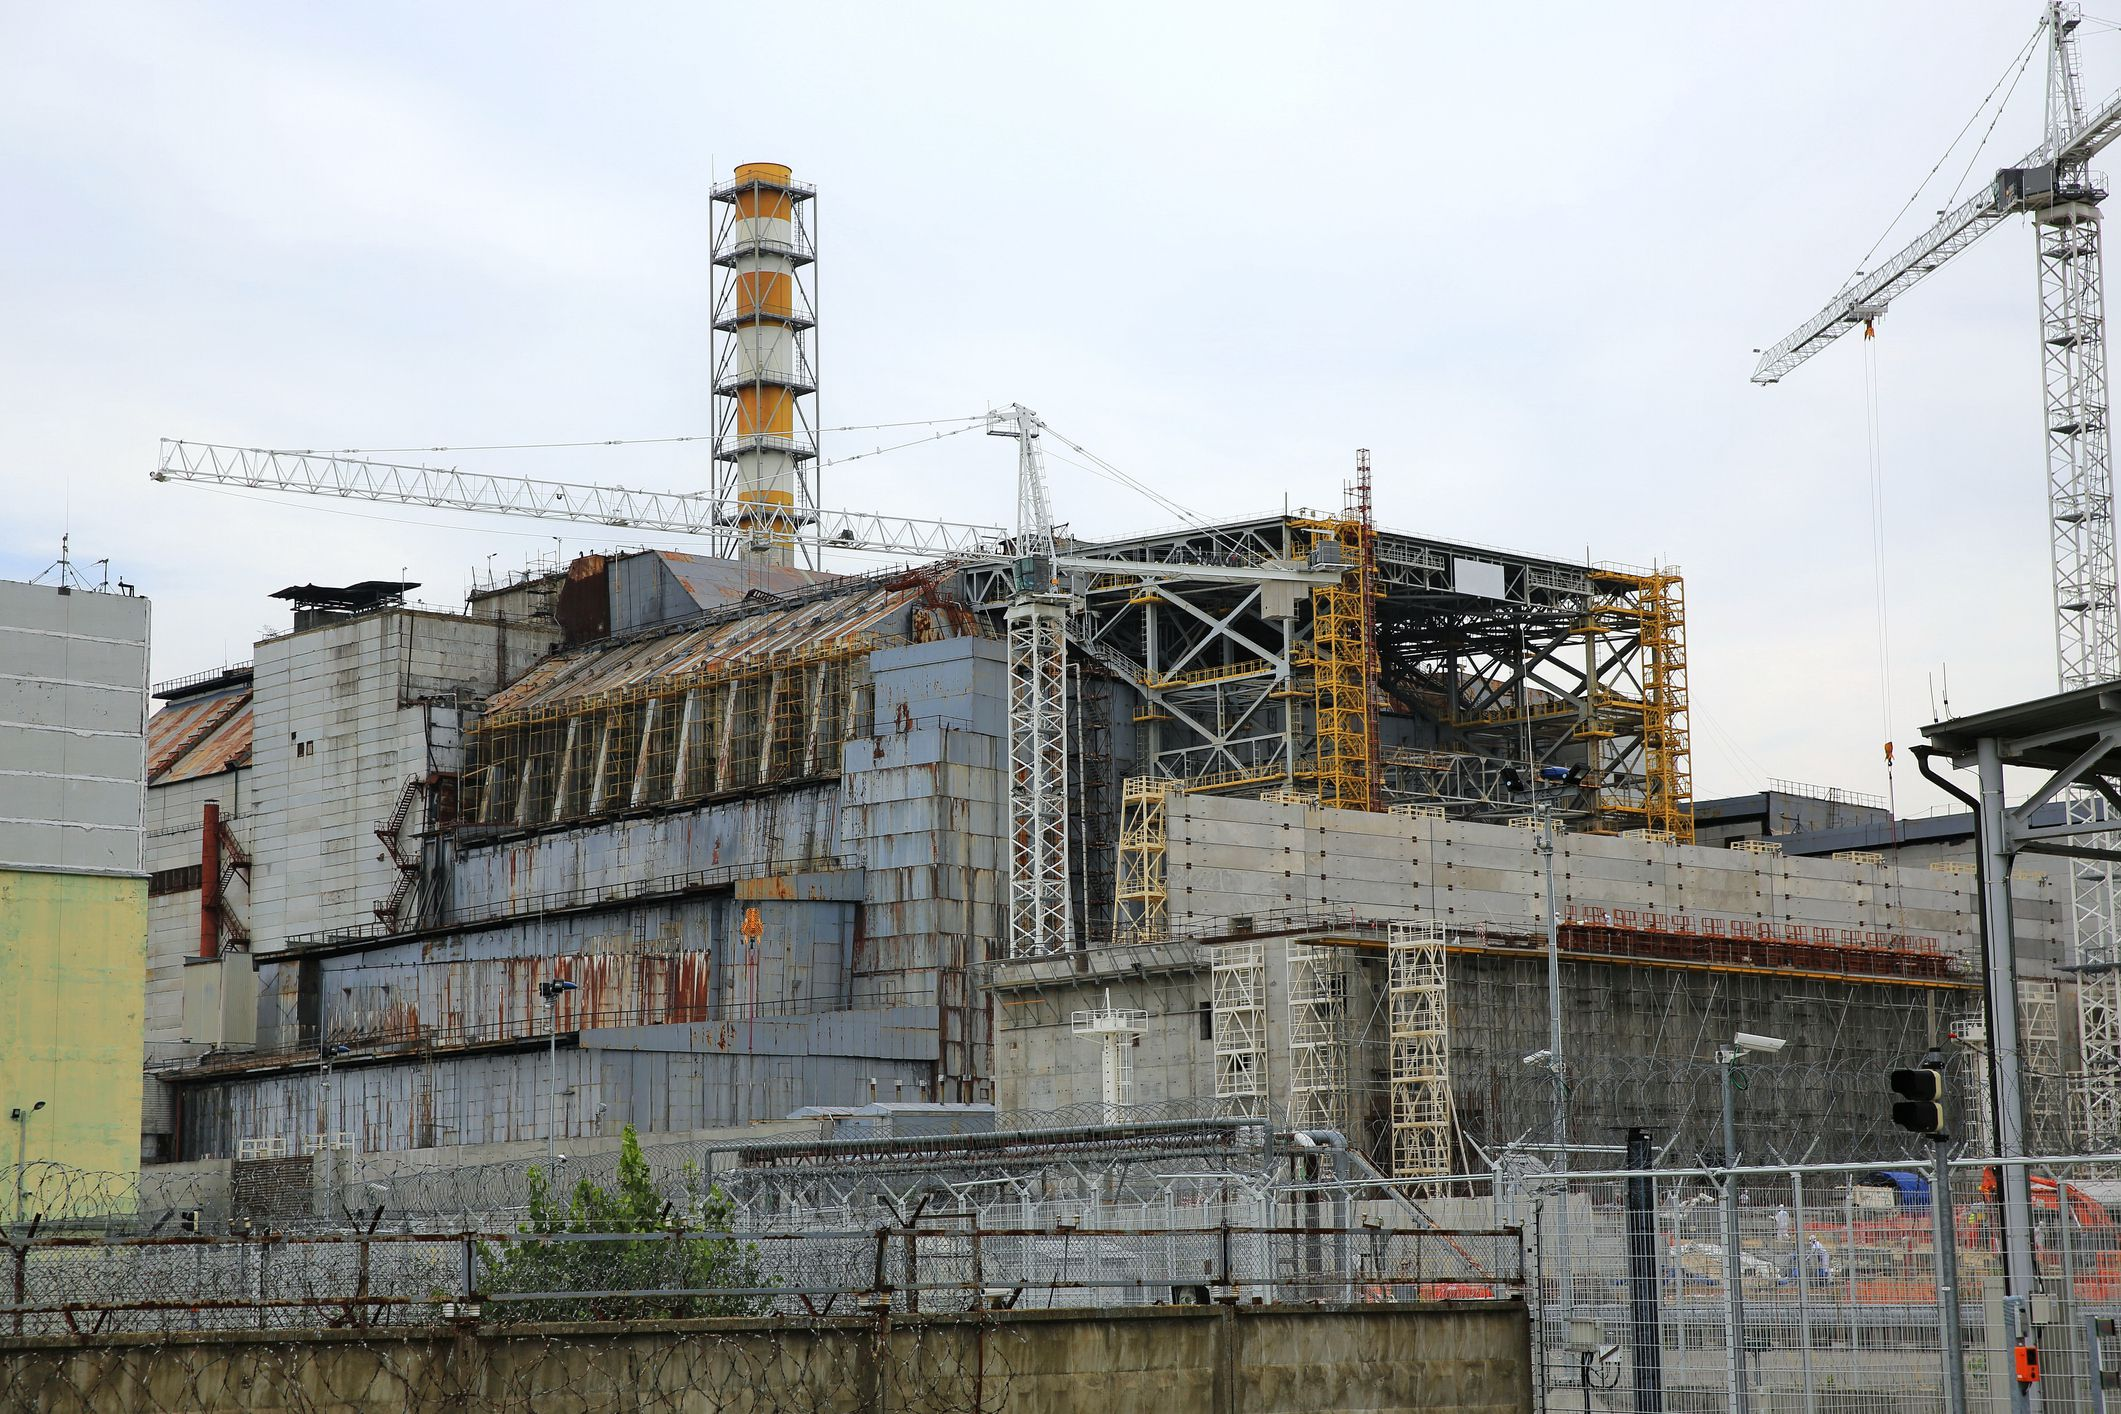 Chernobyl: The Worst Nuclear Disaster Of All Time – Sick ... |Chernobyl Reactor Meltdown